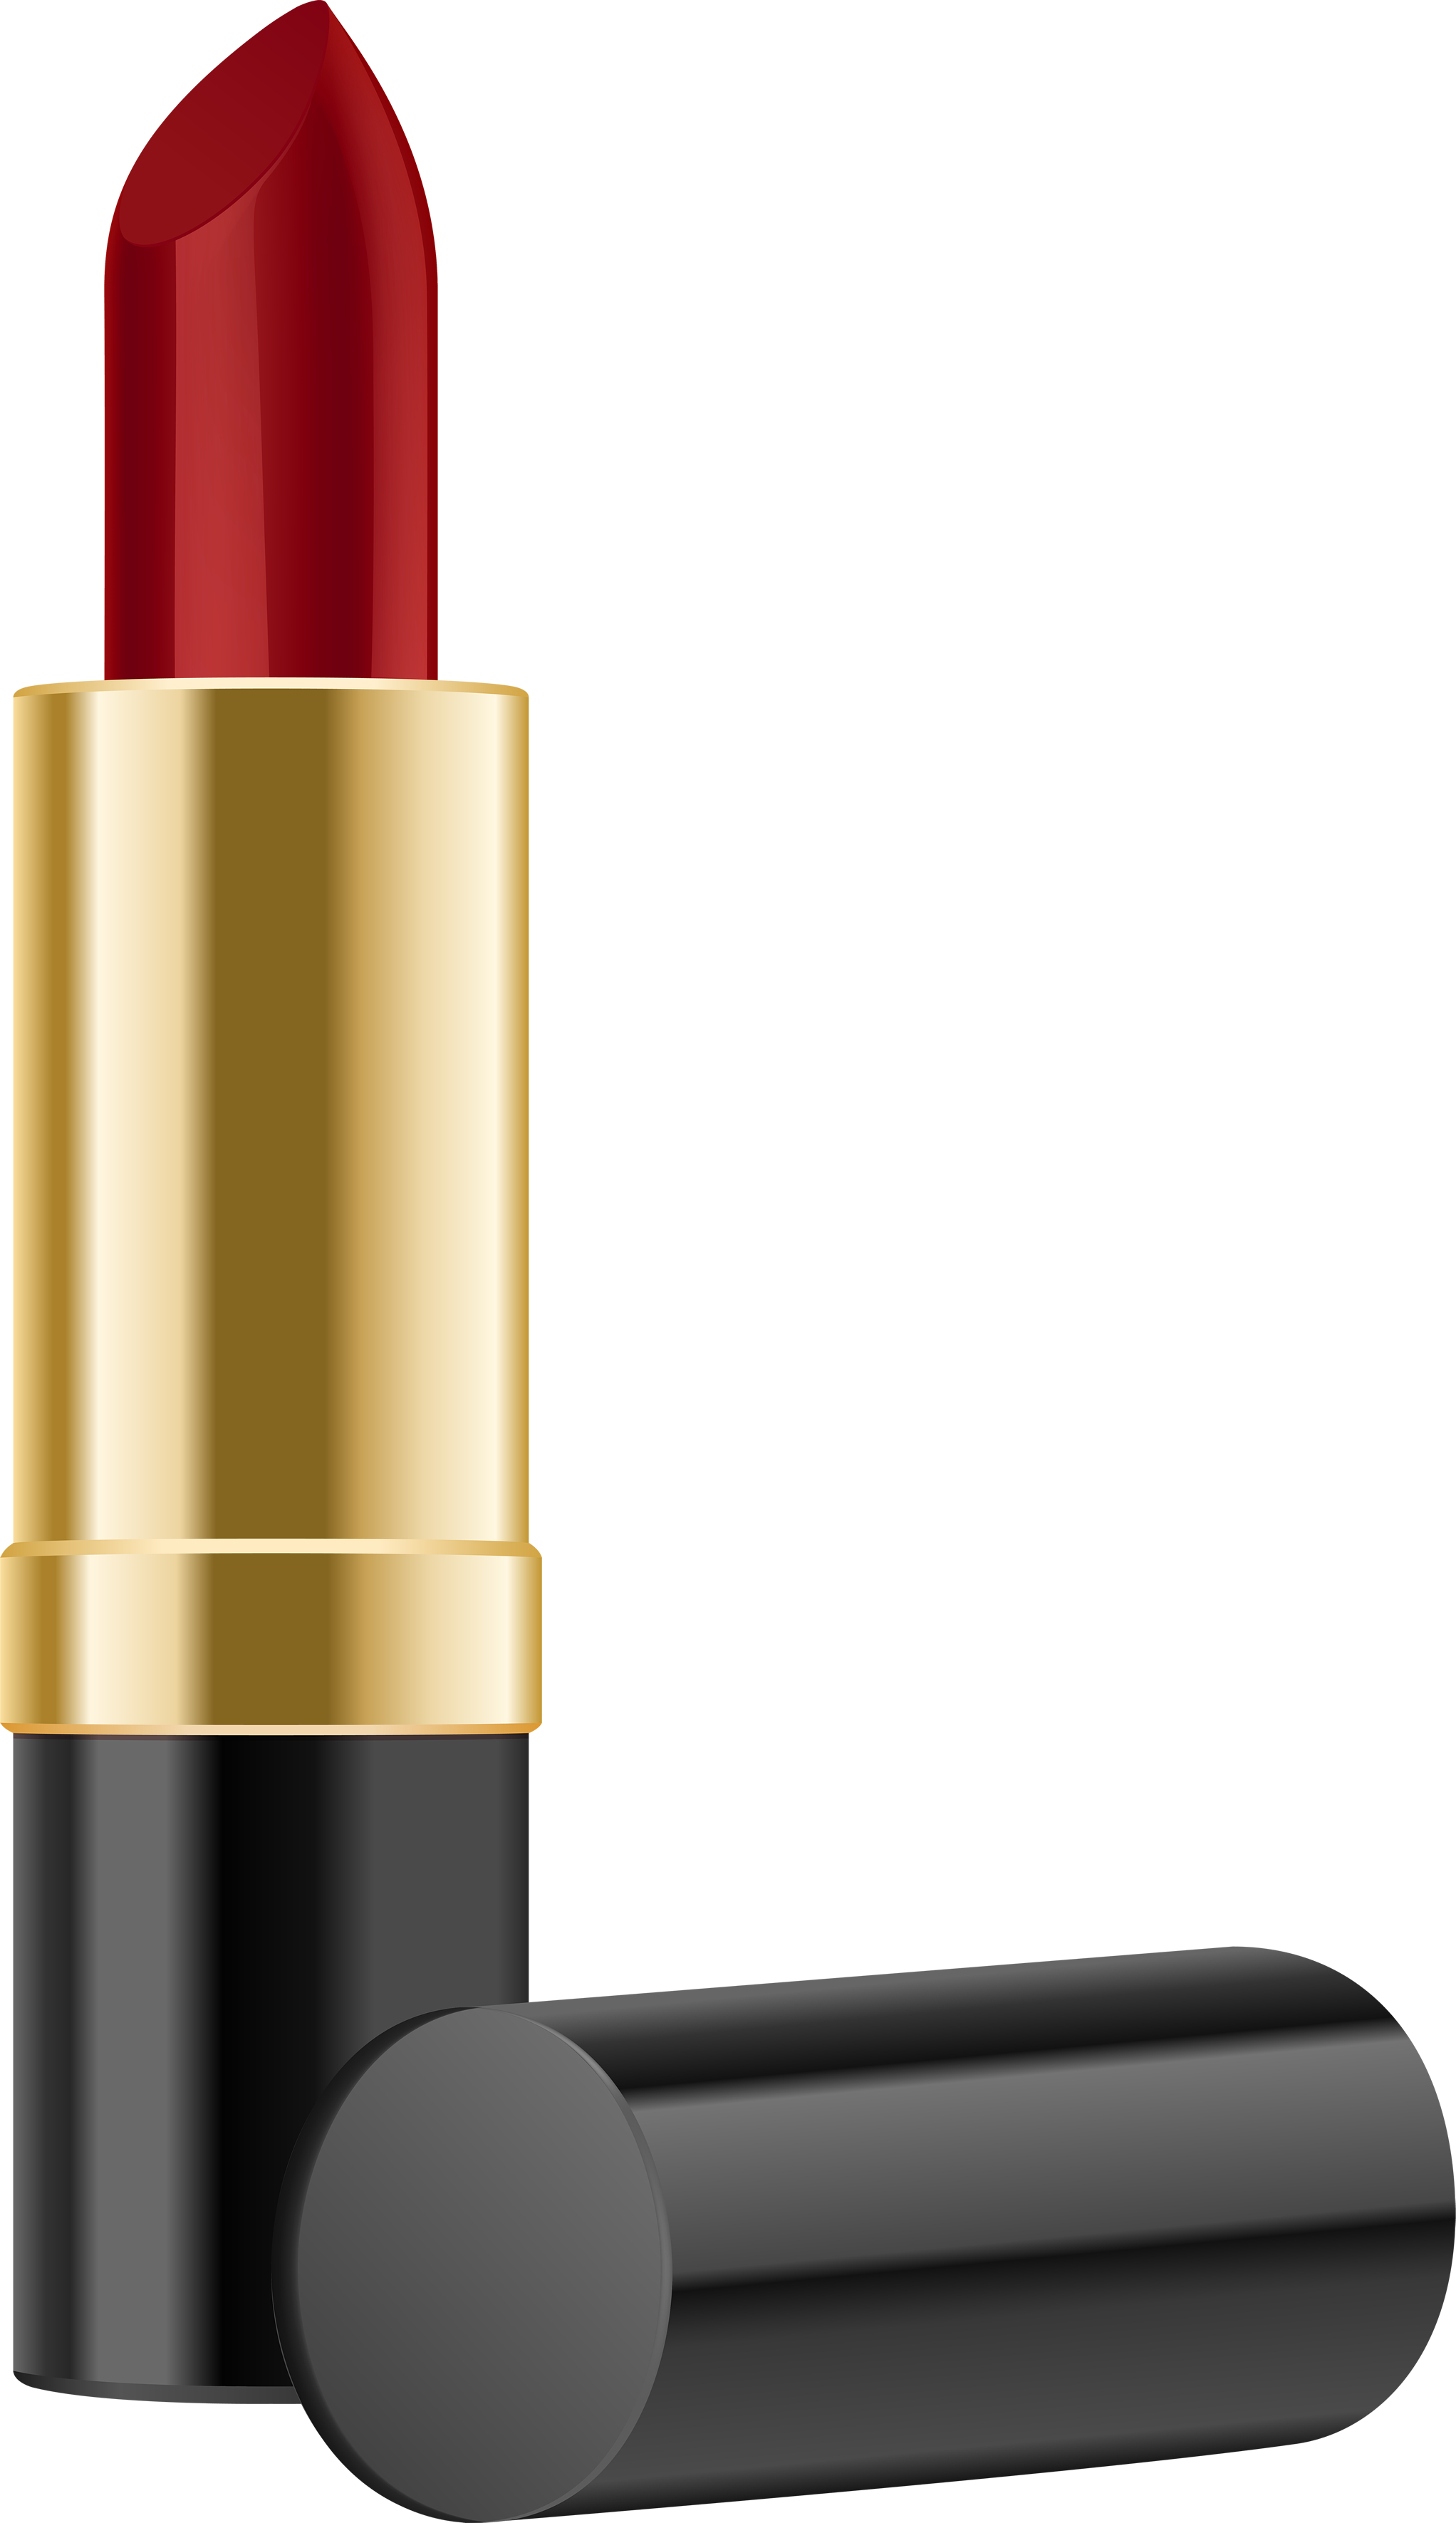 lipstick png images download crazypngm #26575